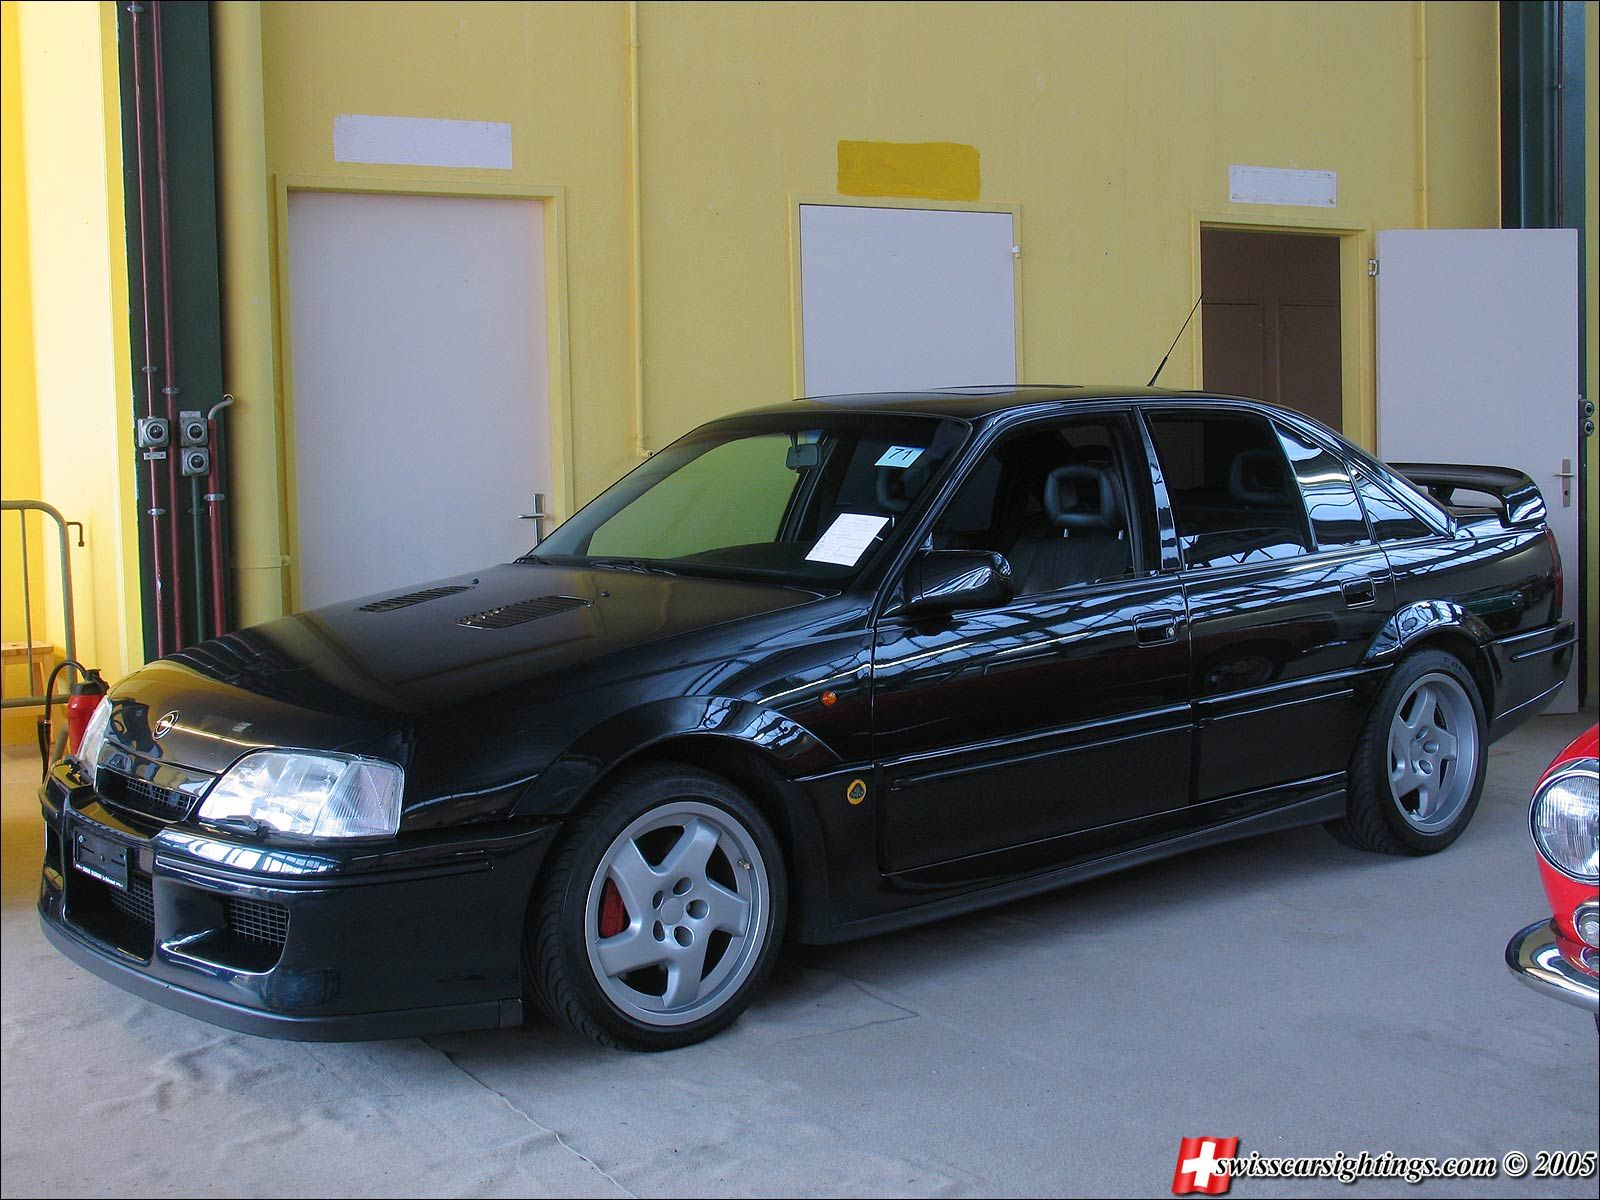 f13f2404da79de3d092fc45a66b6756a Surprising Lotus Carlton Engine for Sale Cars Trend